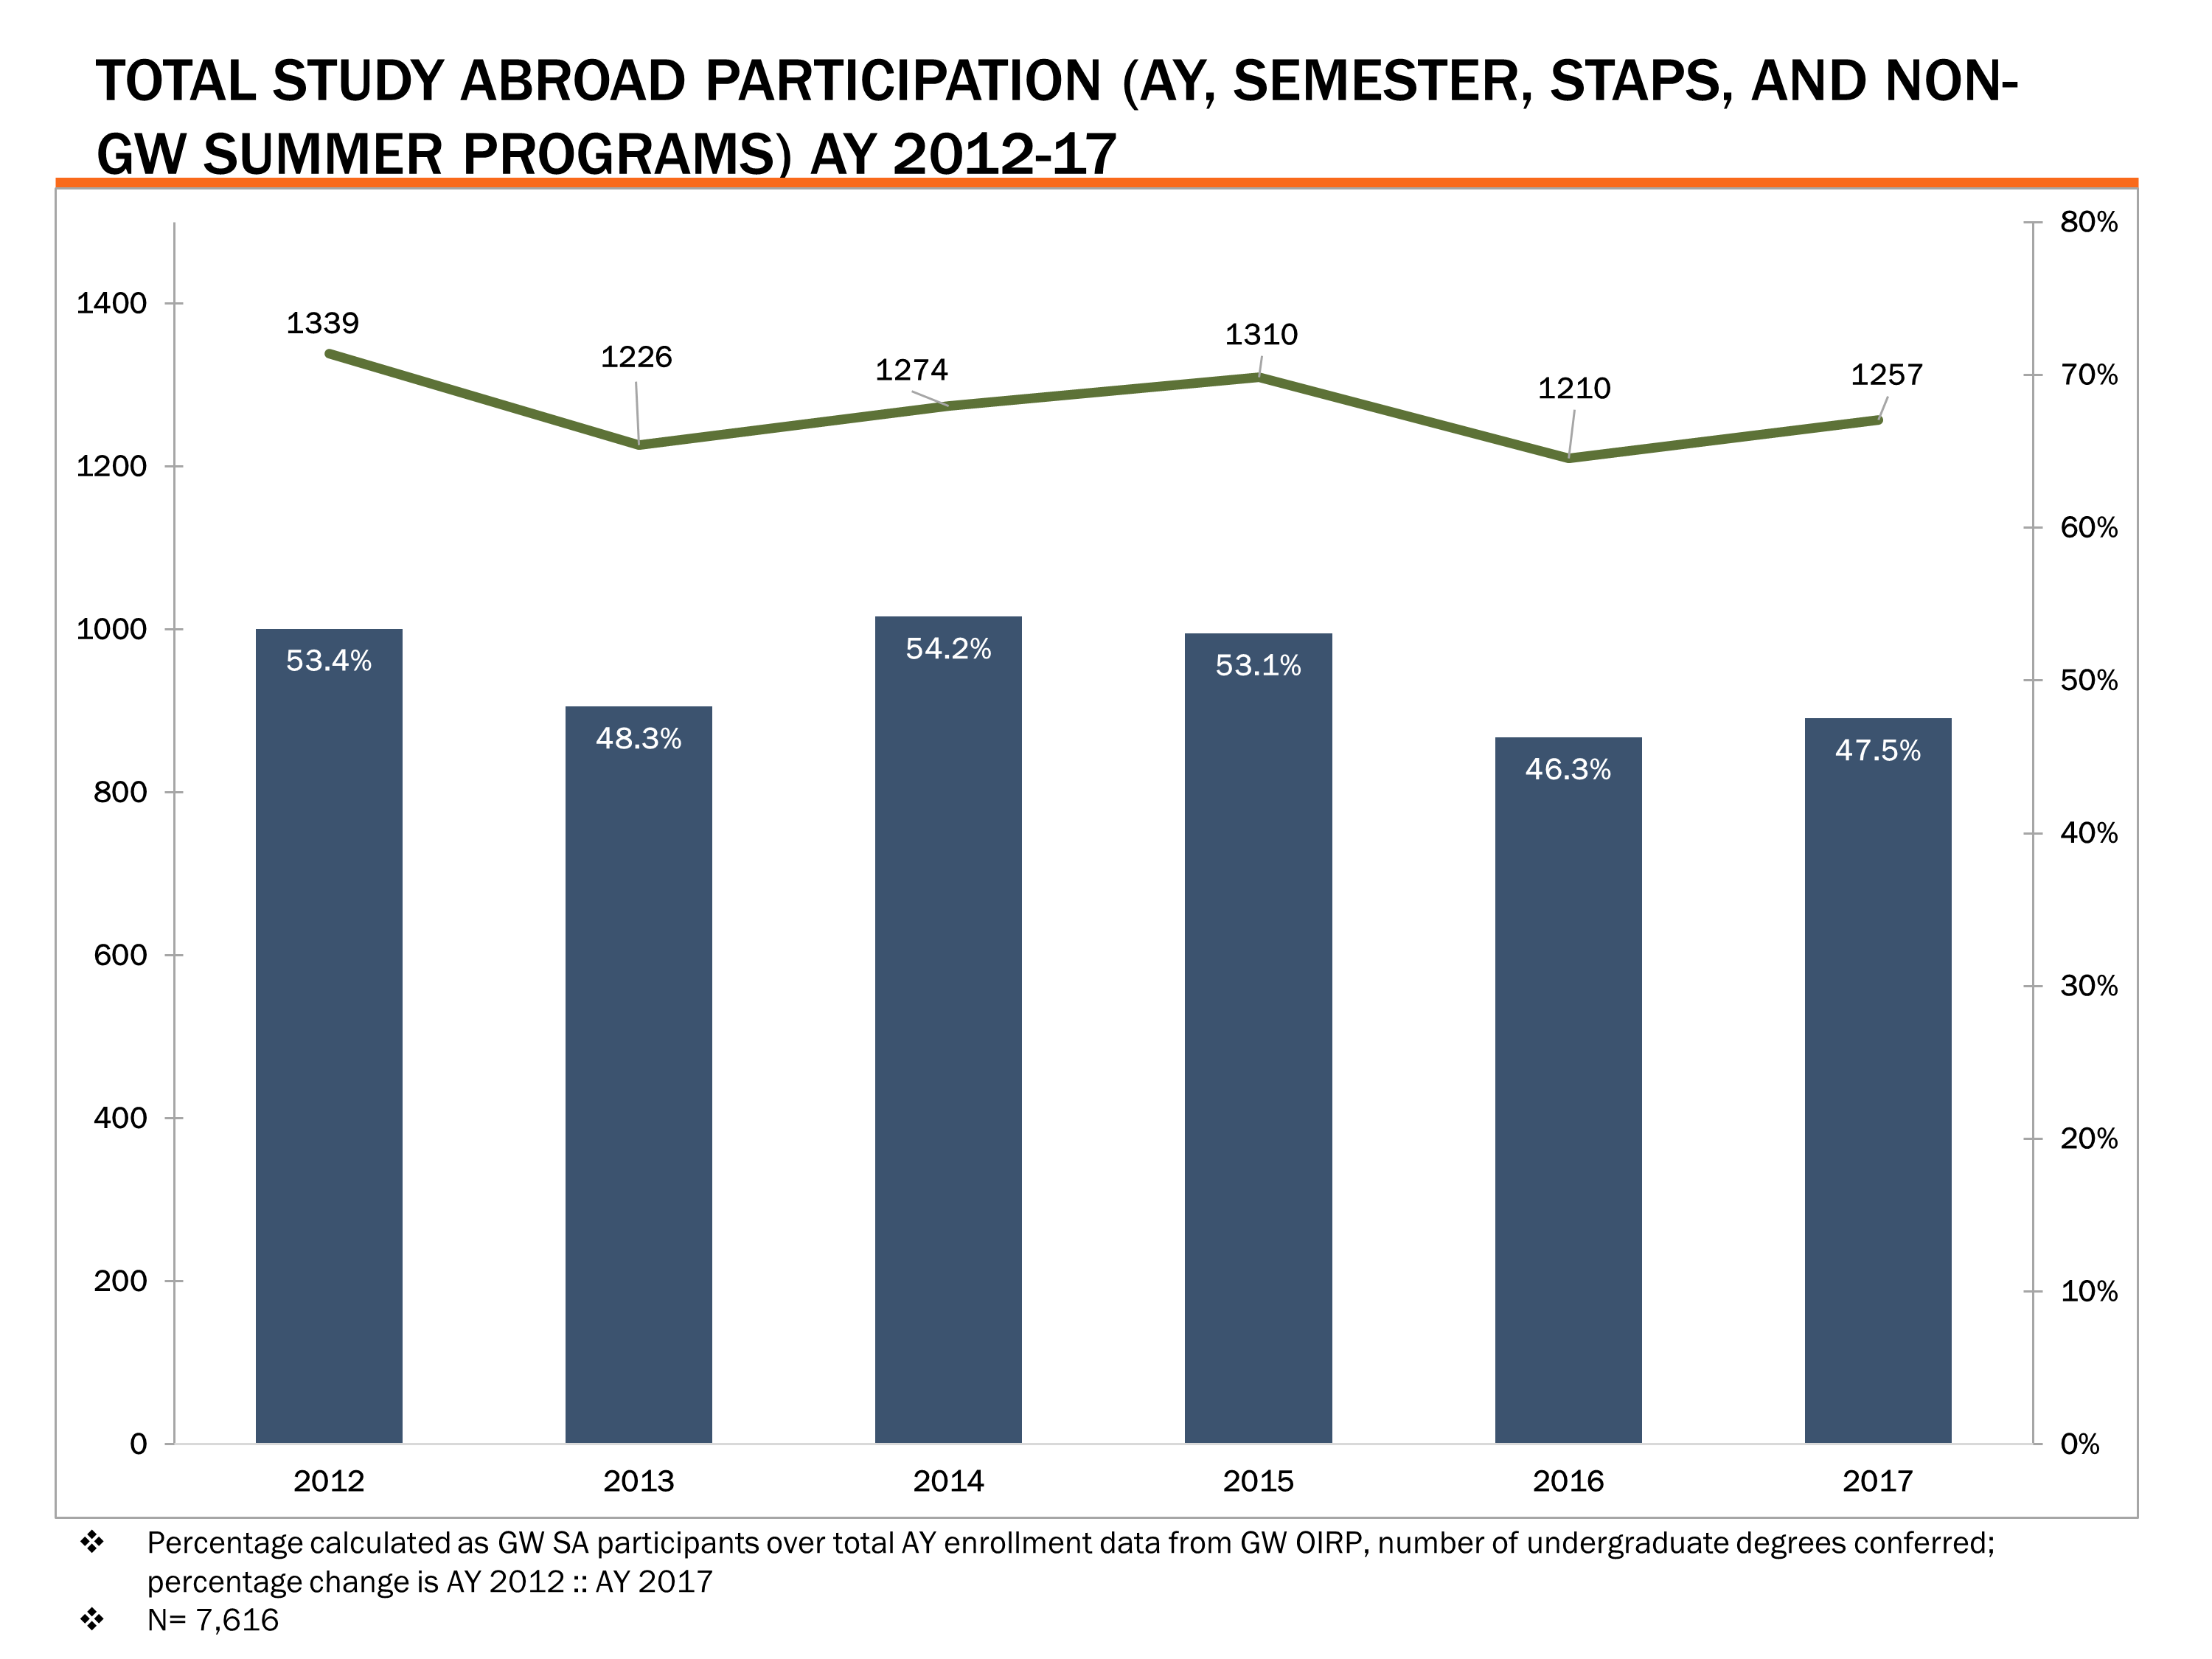 Total Study Abroad Participation, AY 2012-17